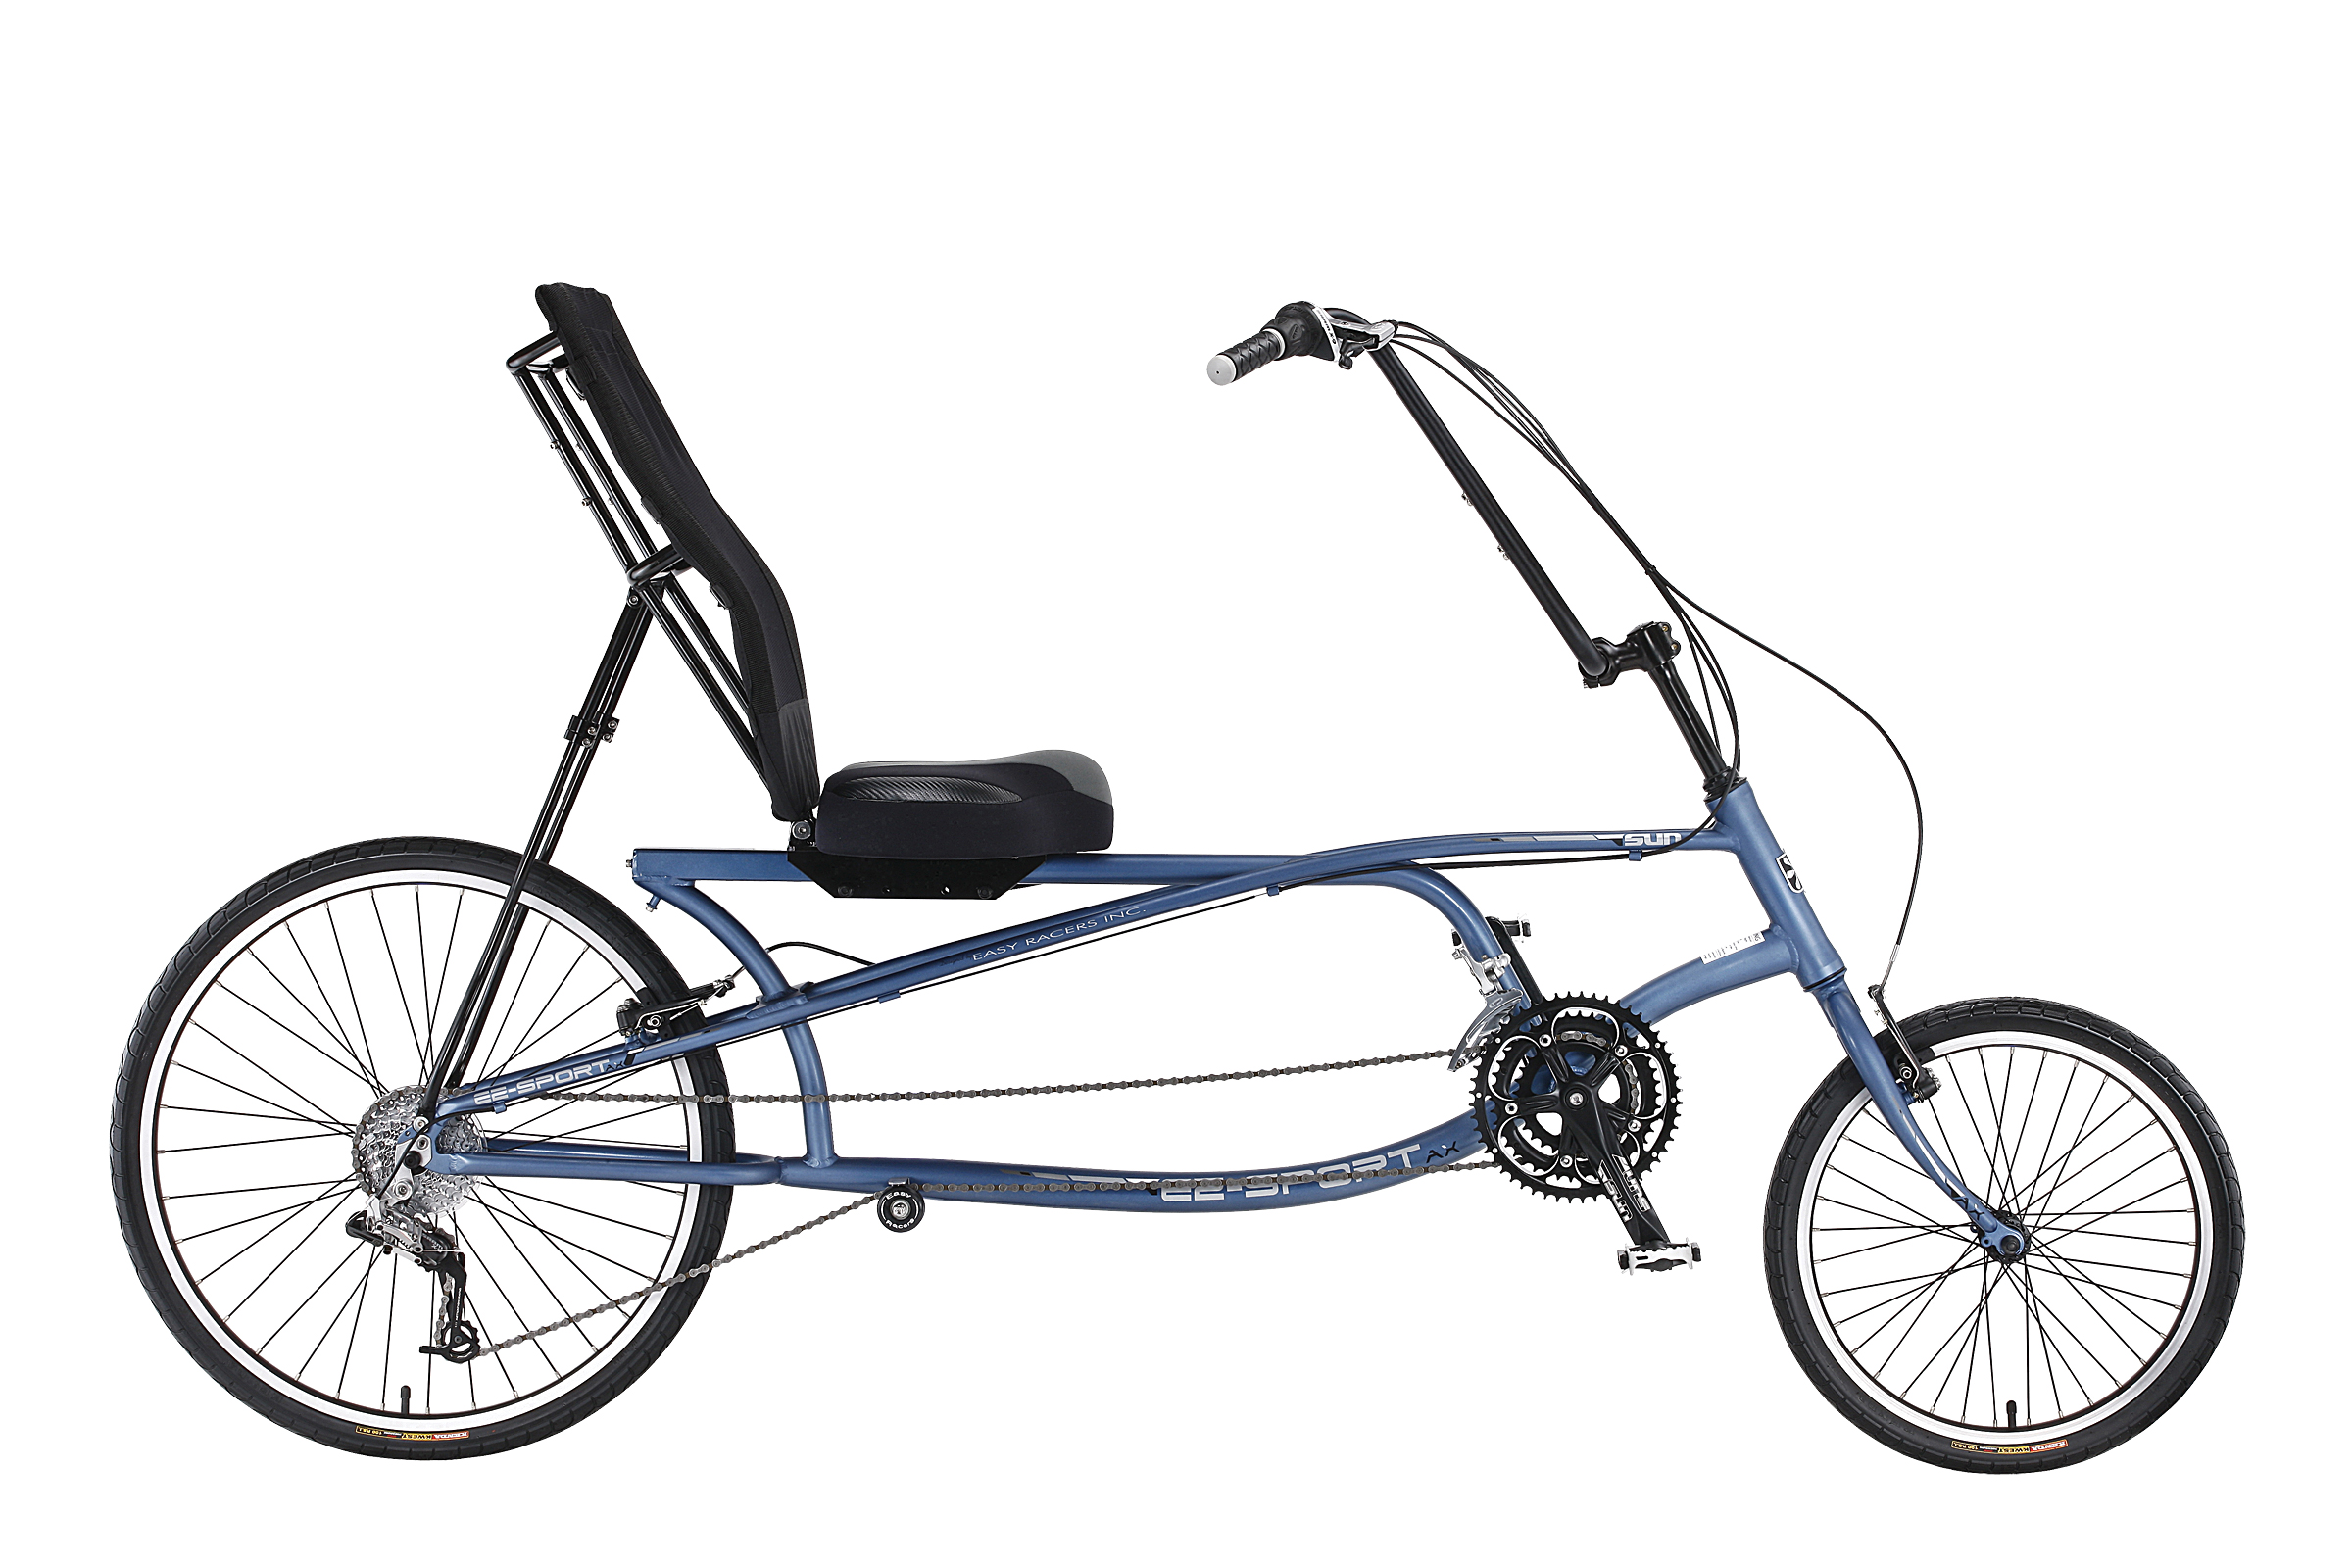 EZ-Sport-AX-blue-68920-Sun-Seeker-Recumbents